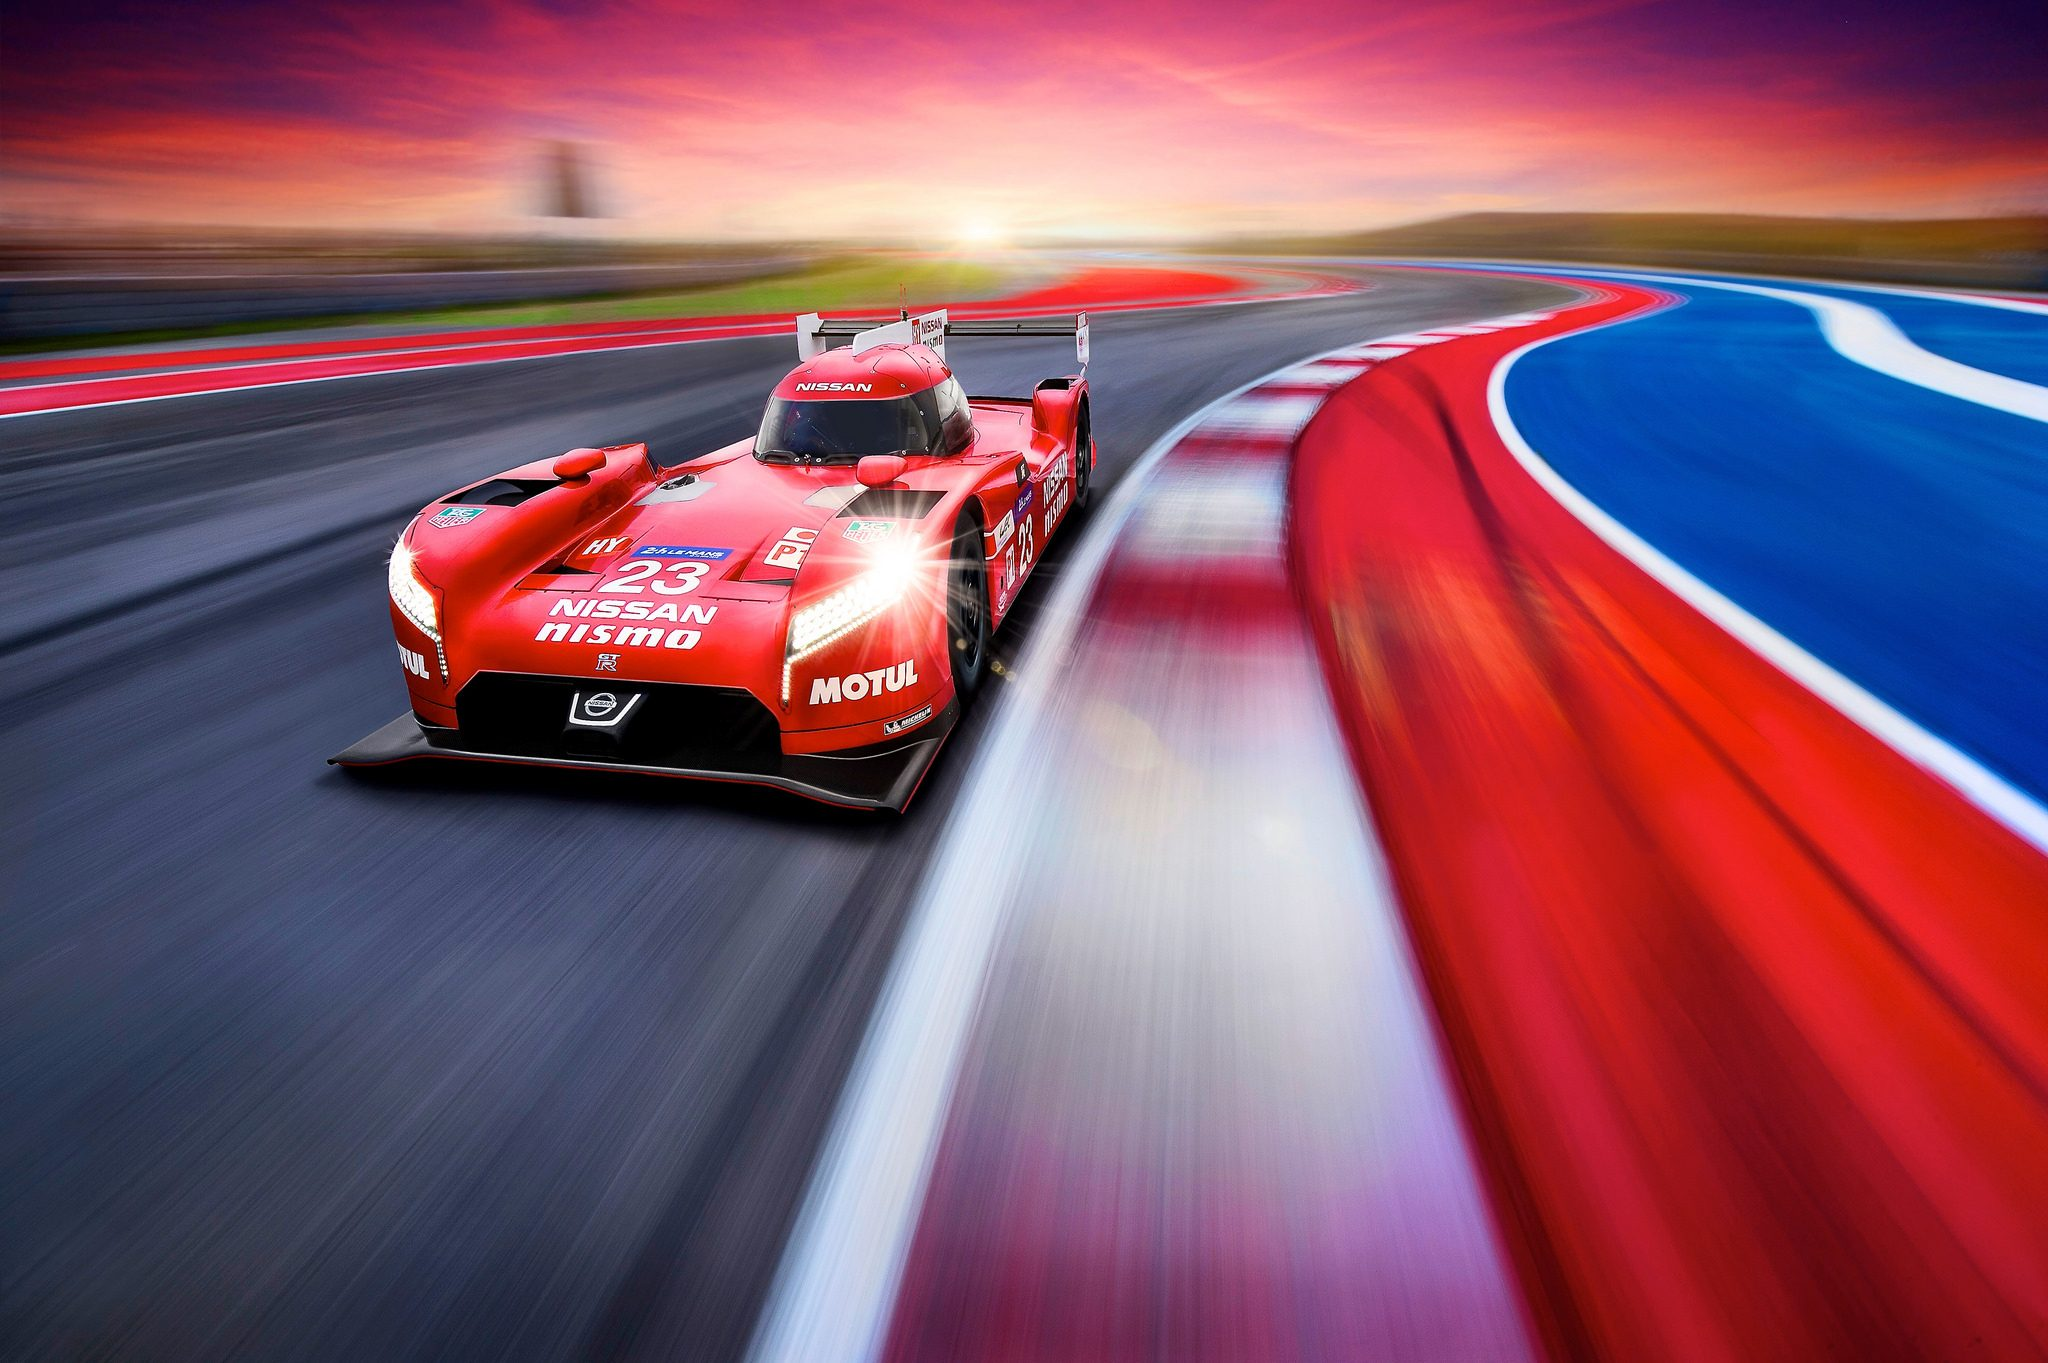 Nissan GTR LM NISMO FrontWheel Drive LMP1 Car Revealed